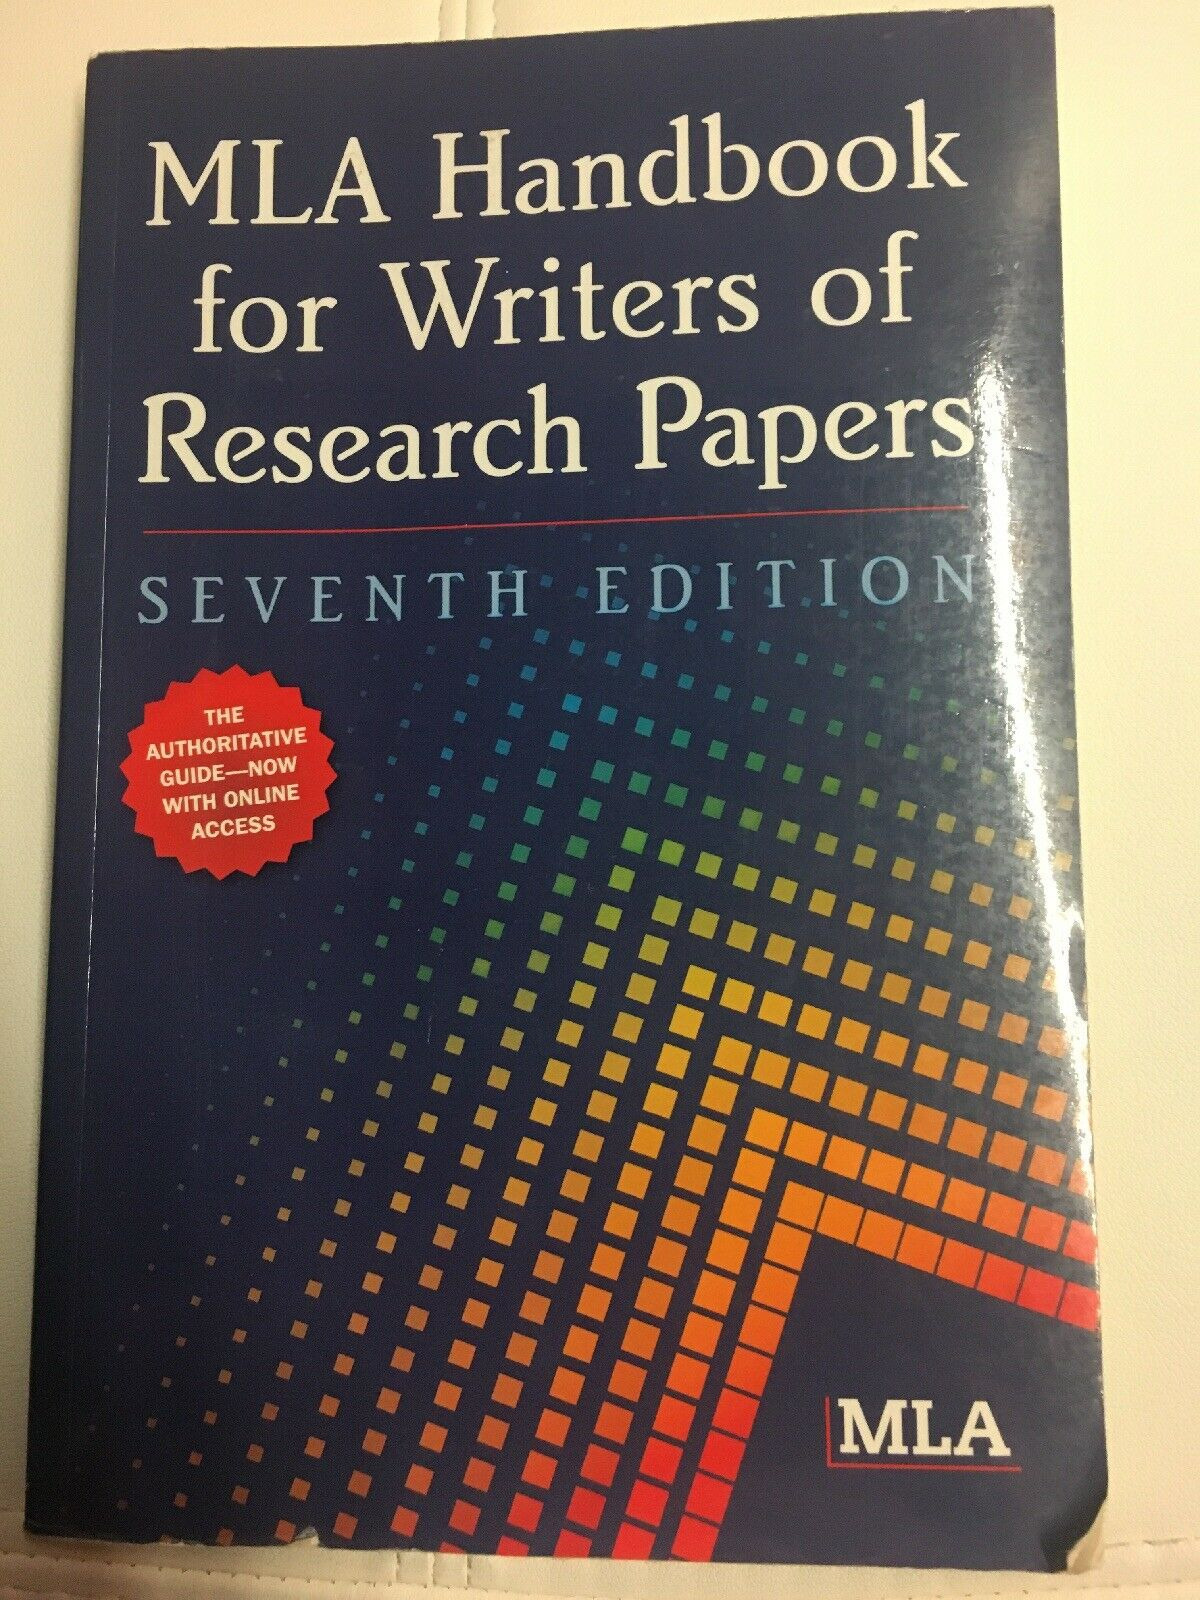 007 Mla Handbook For Writing Research Papers Paper S Frightening Writers Of 8th Edition Pdf Free Download According To The Full